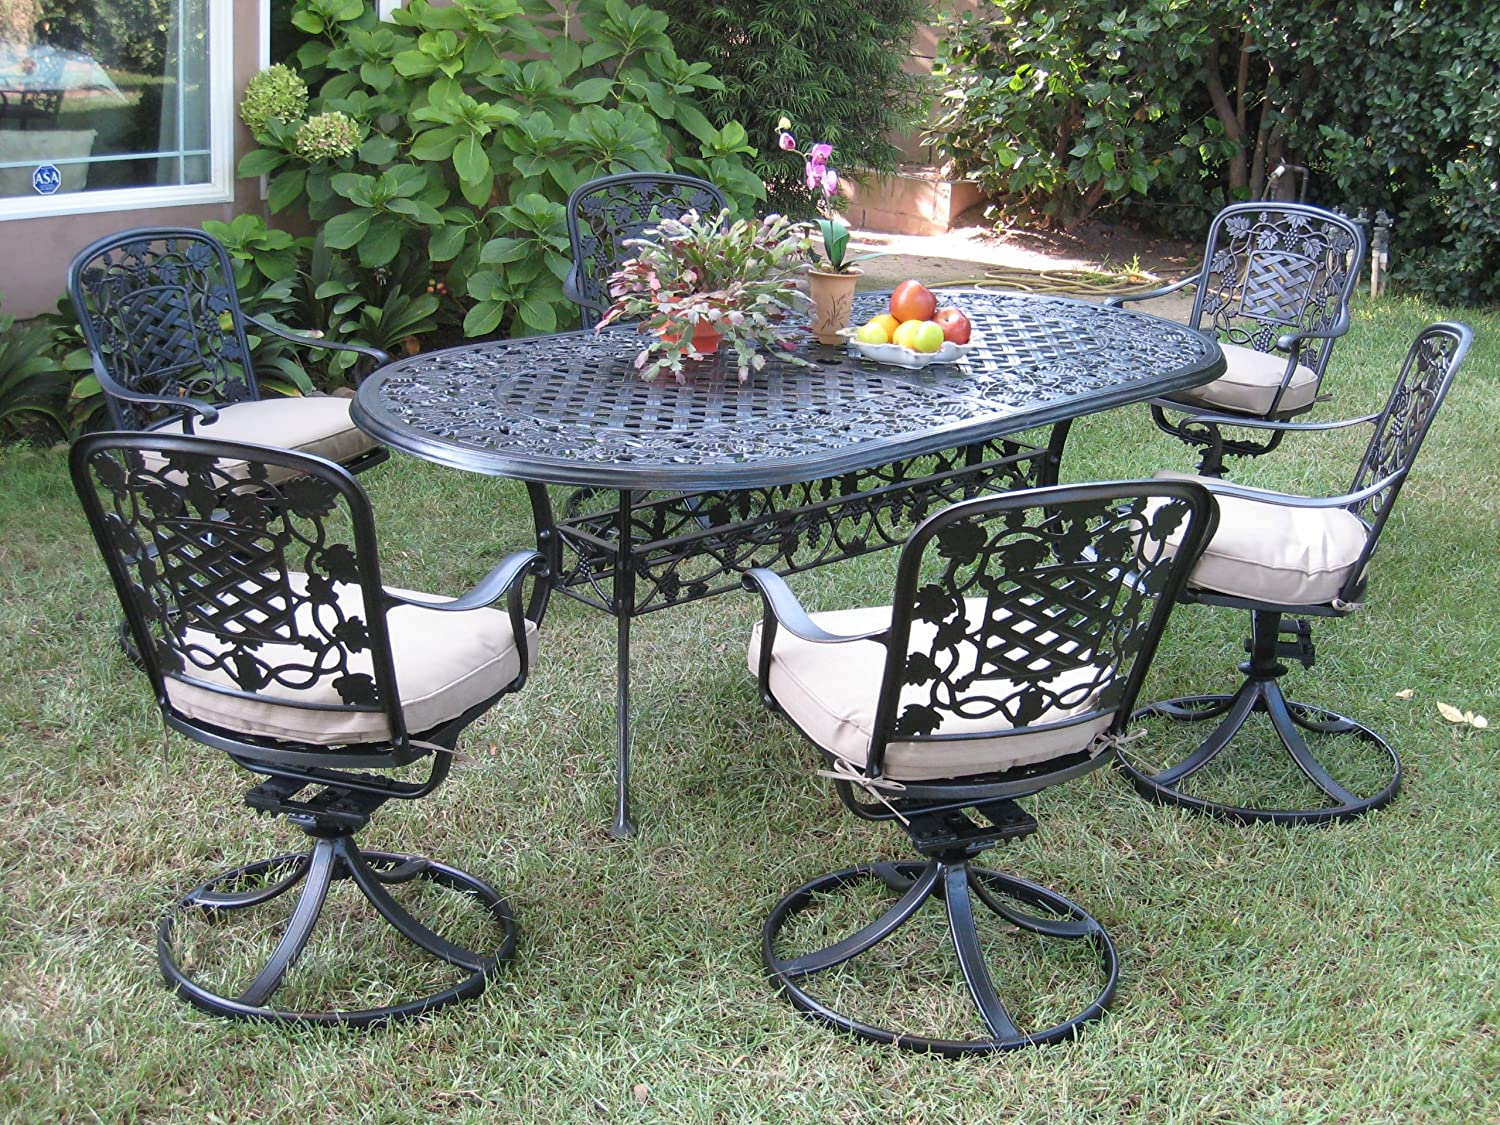 Marvelous Outdoor Cast Aluminum Patio Furniture 7 Piece Dining Set F Andrewgaddart Wooden Chair Designs For Living Room Andrewgaddartcom